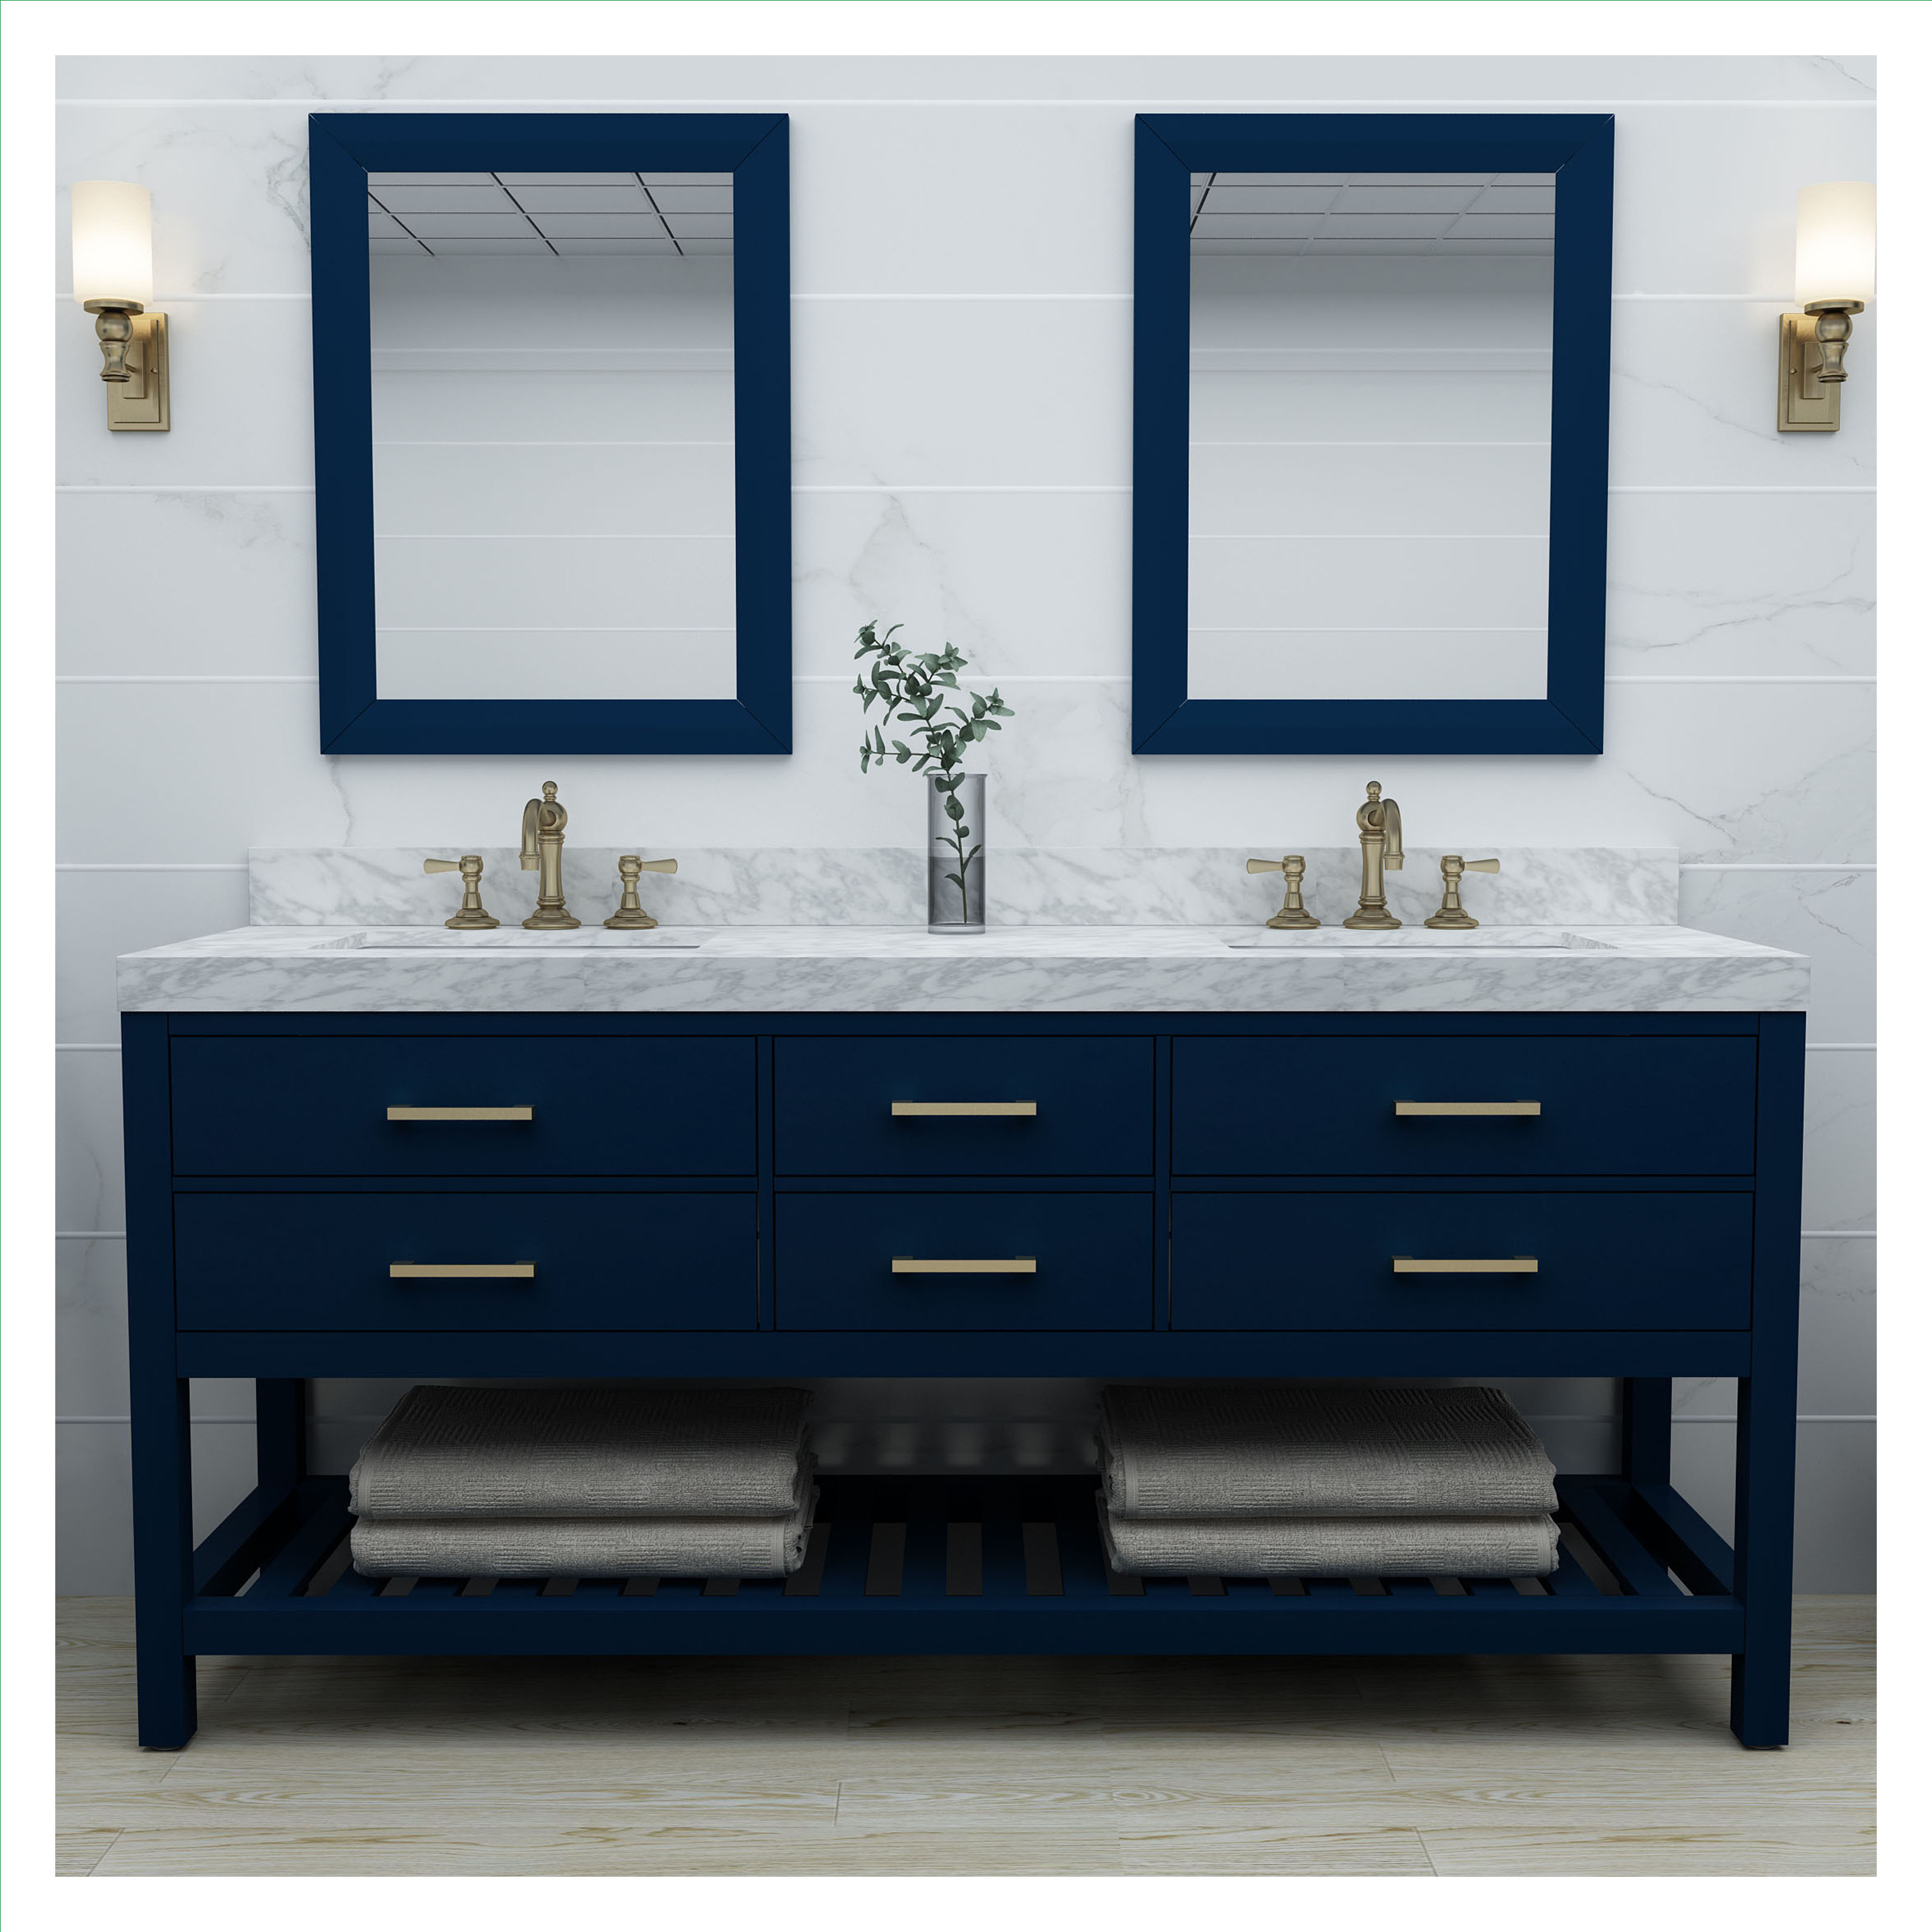 """72"""" Double Sink Bath Vanity Set in Heritage Blue with Italian Carrara White Marble Vanity top and White Undermount Basin with Gold Hardware"""